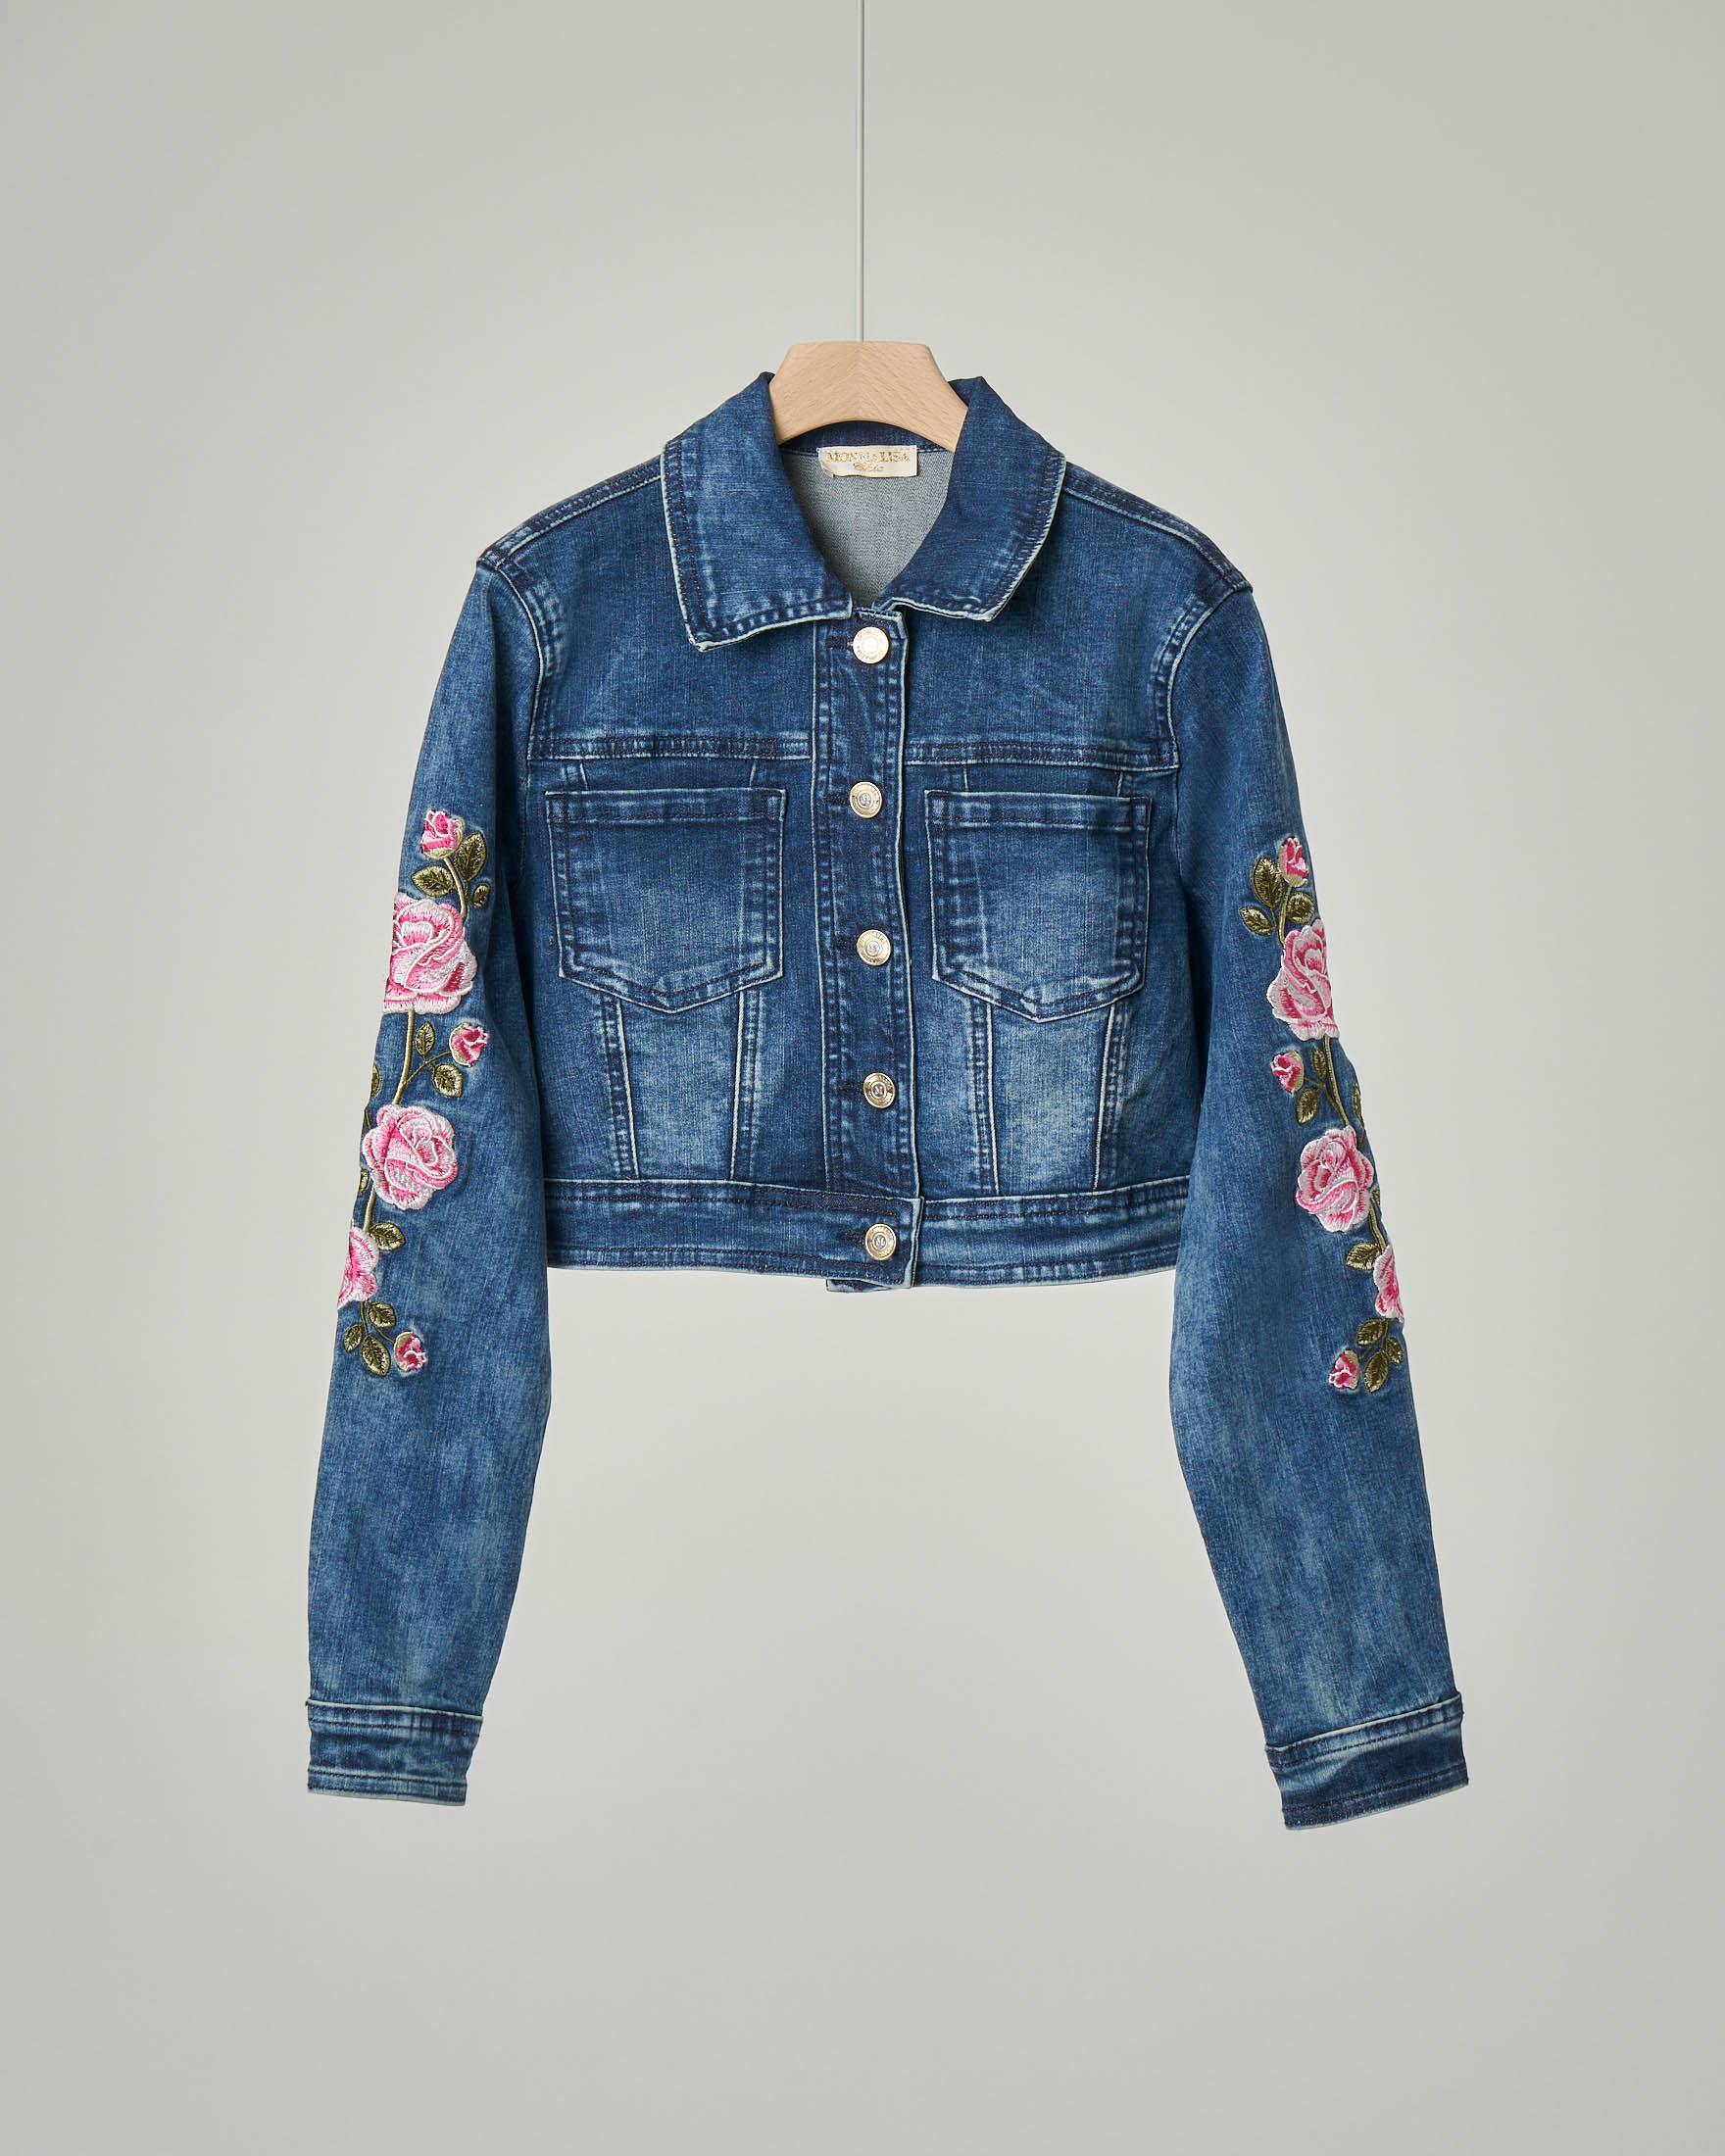 Giacca corta in denim con ricami rose